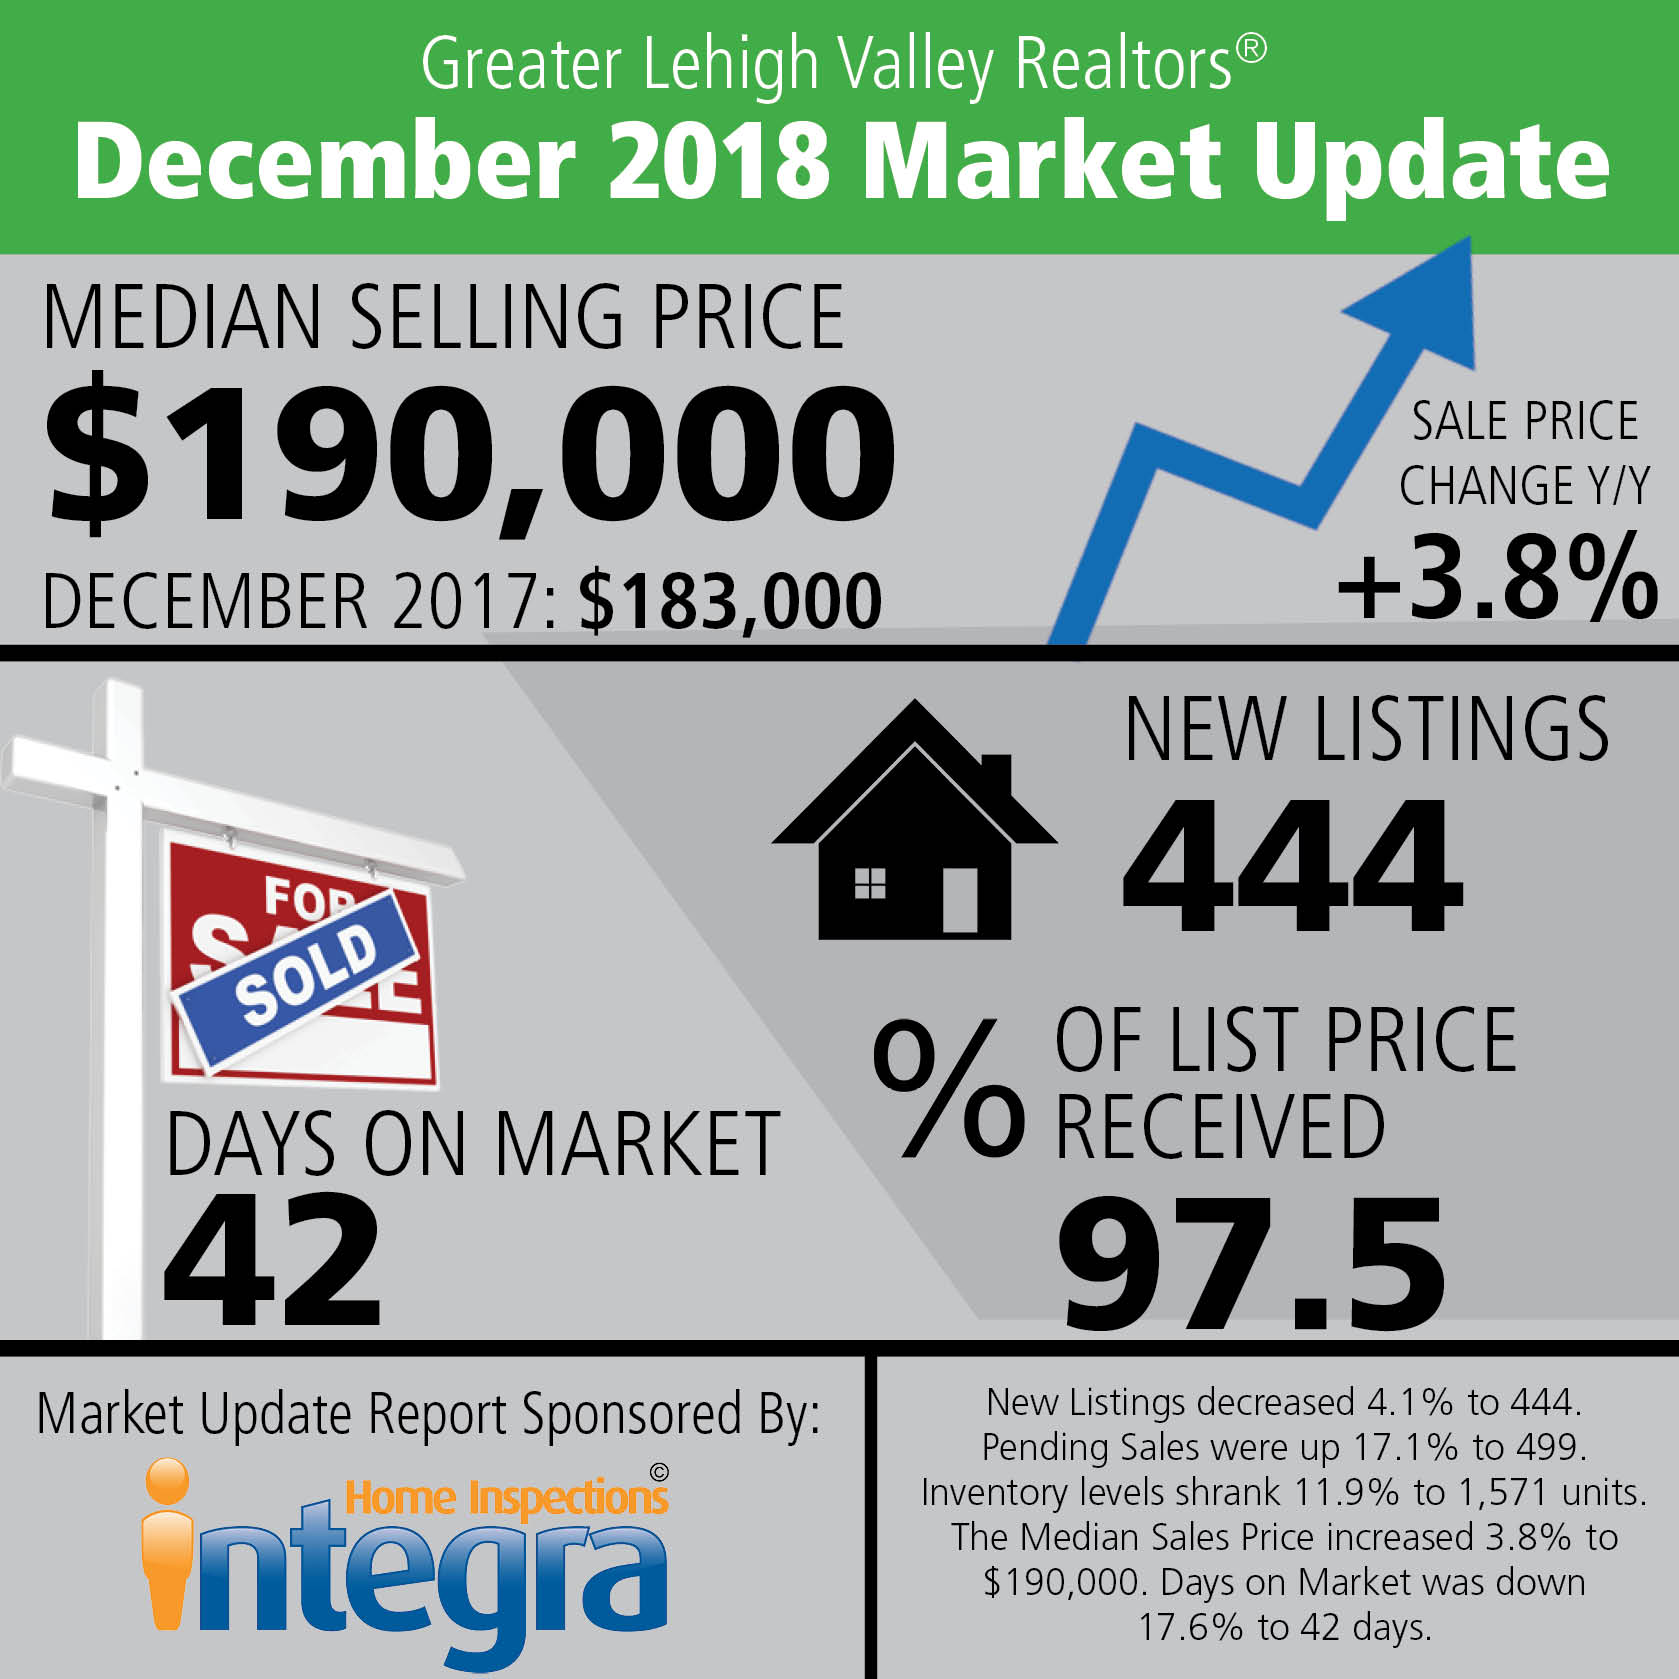 December Data Shows Inventory Will Improve in 2019